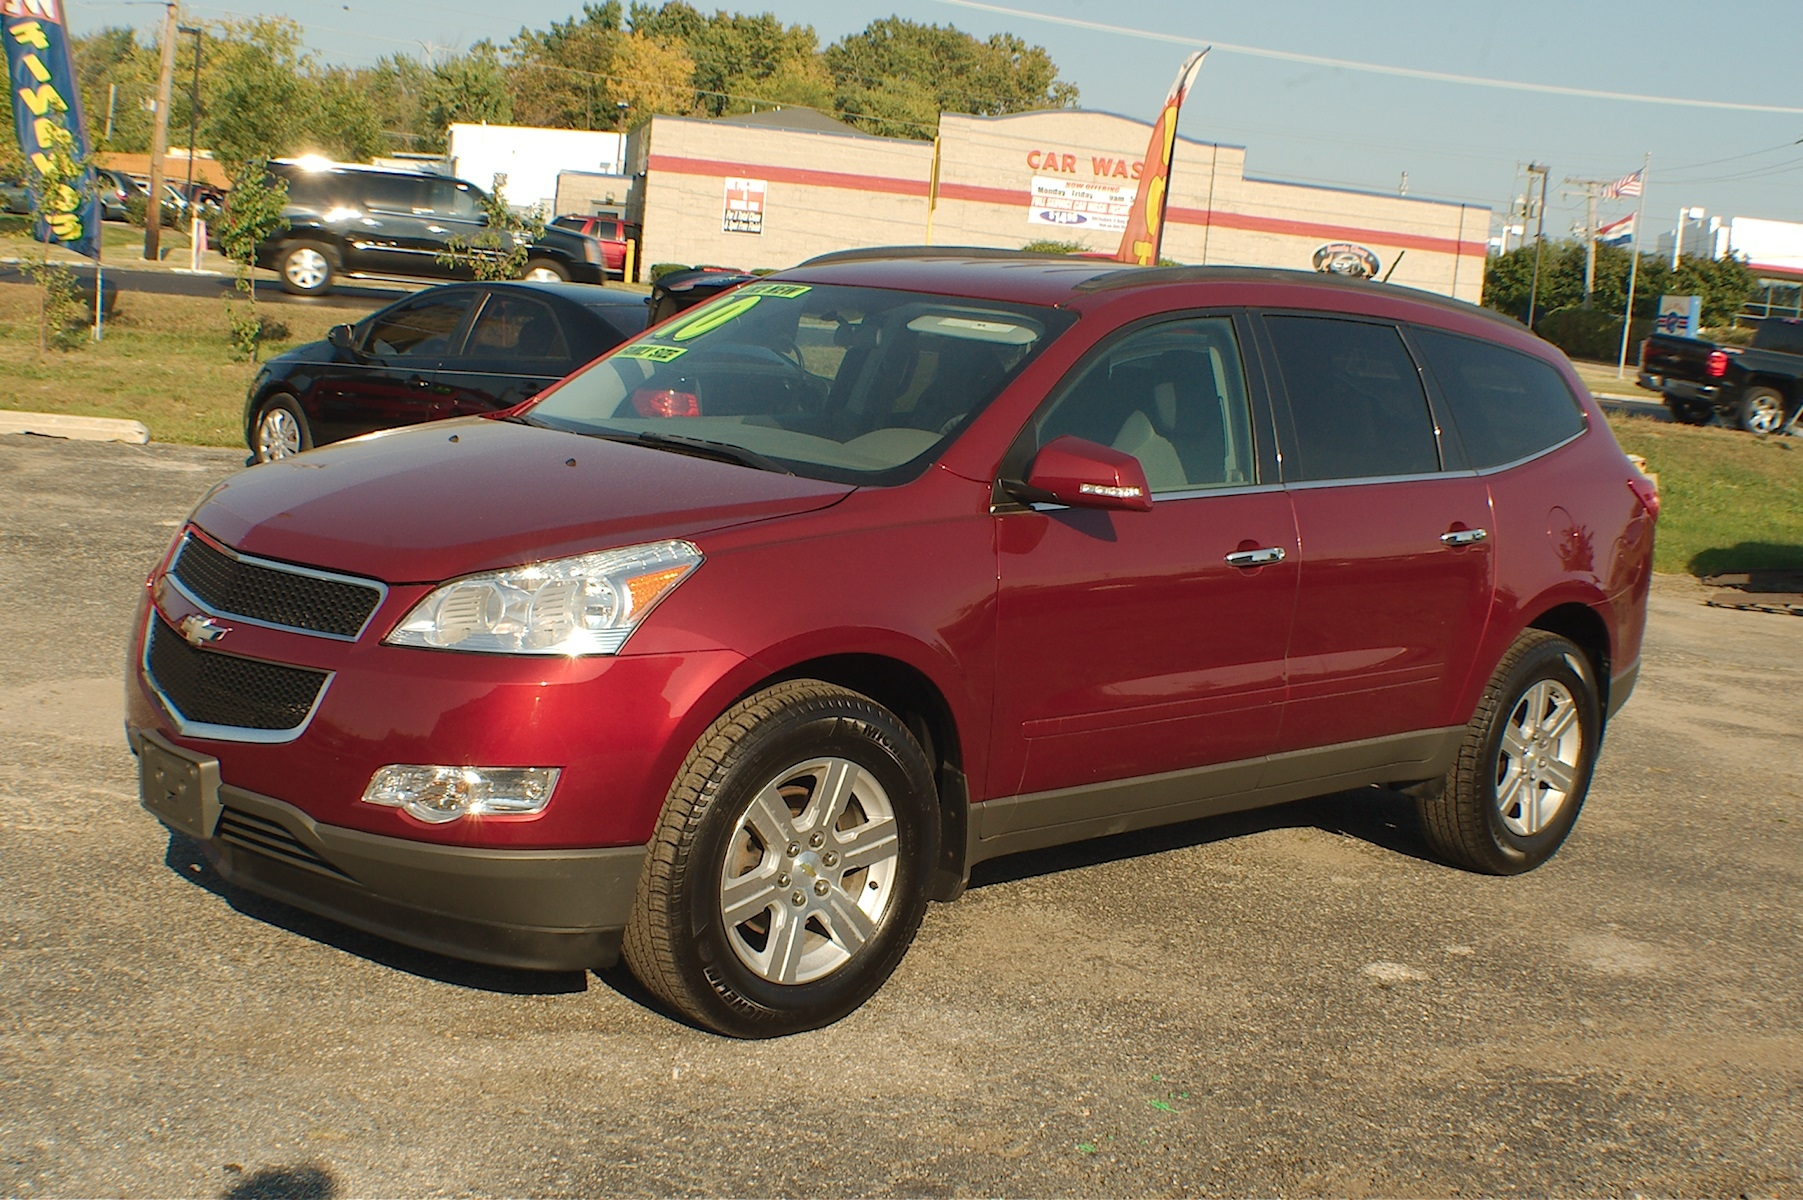 2010 Chevrolet Traverse LT AWD Maroon SUV Used Car Sale Antioch Zion Waukegan Lake County Illinois